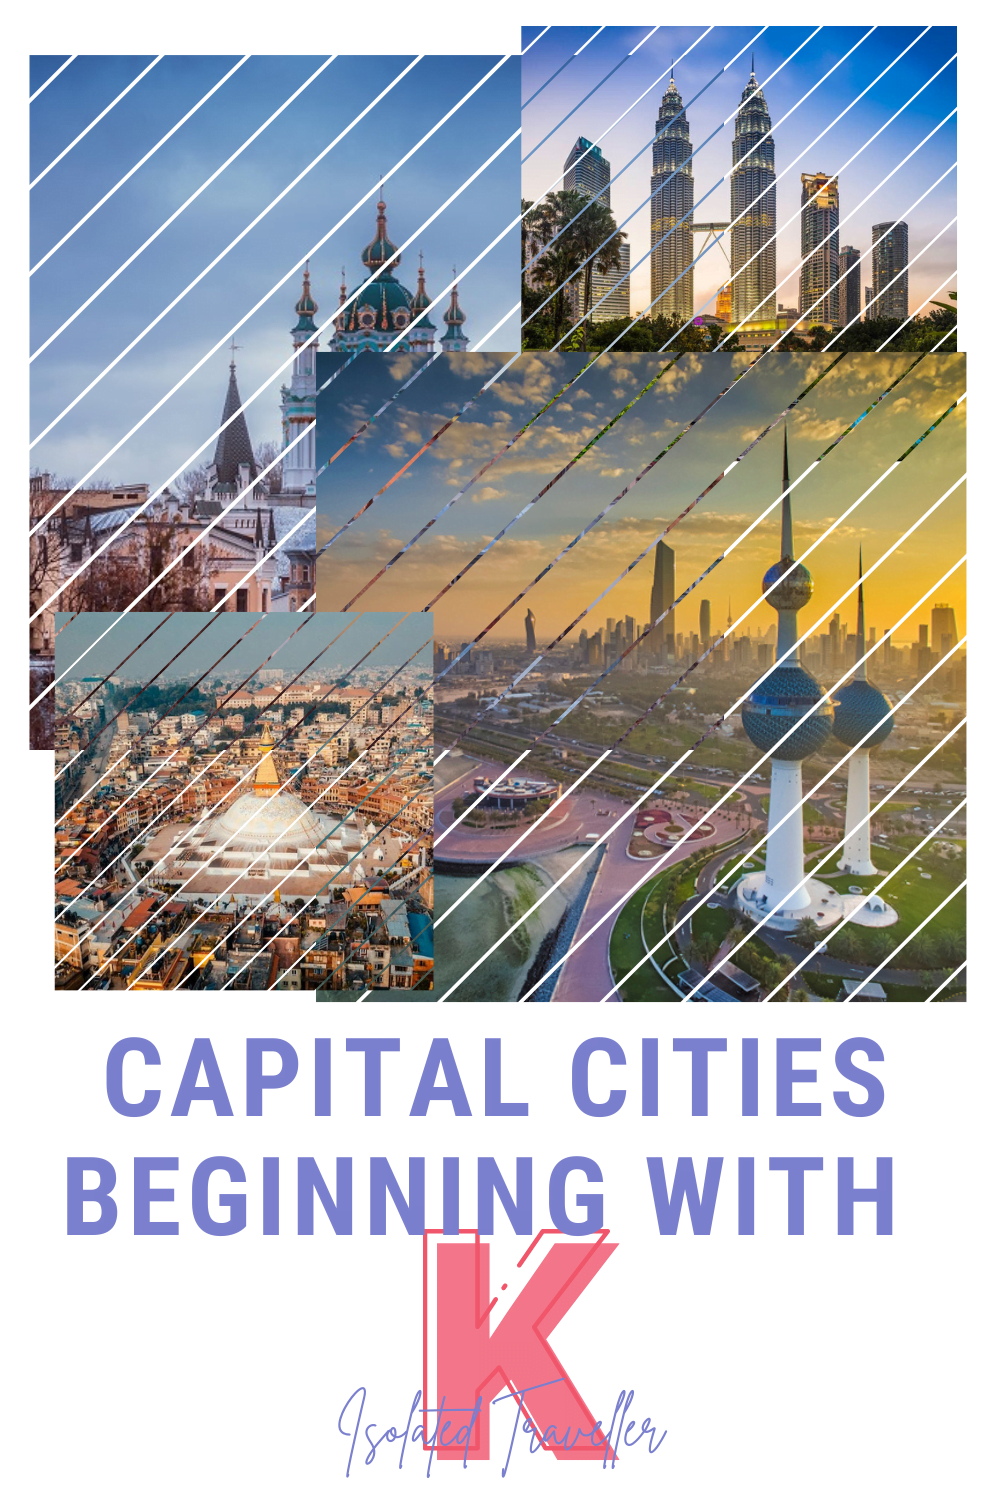 Capital Cities beginning with K